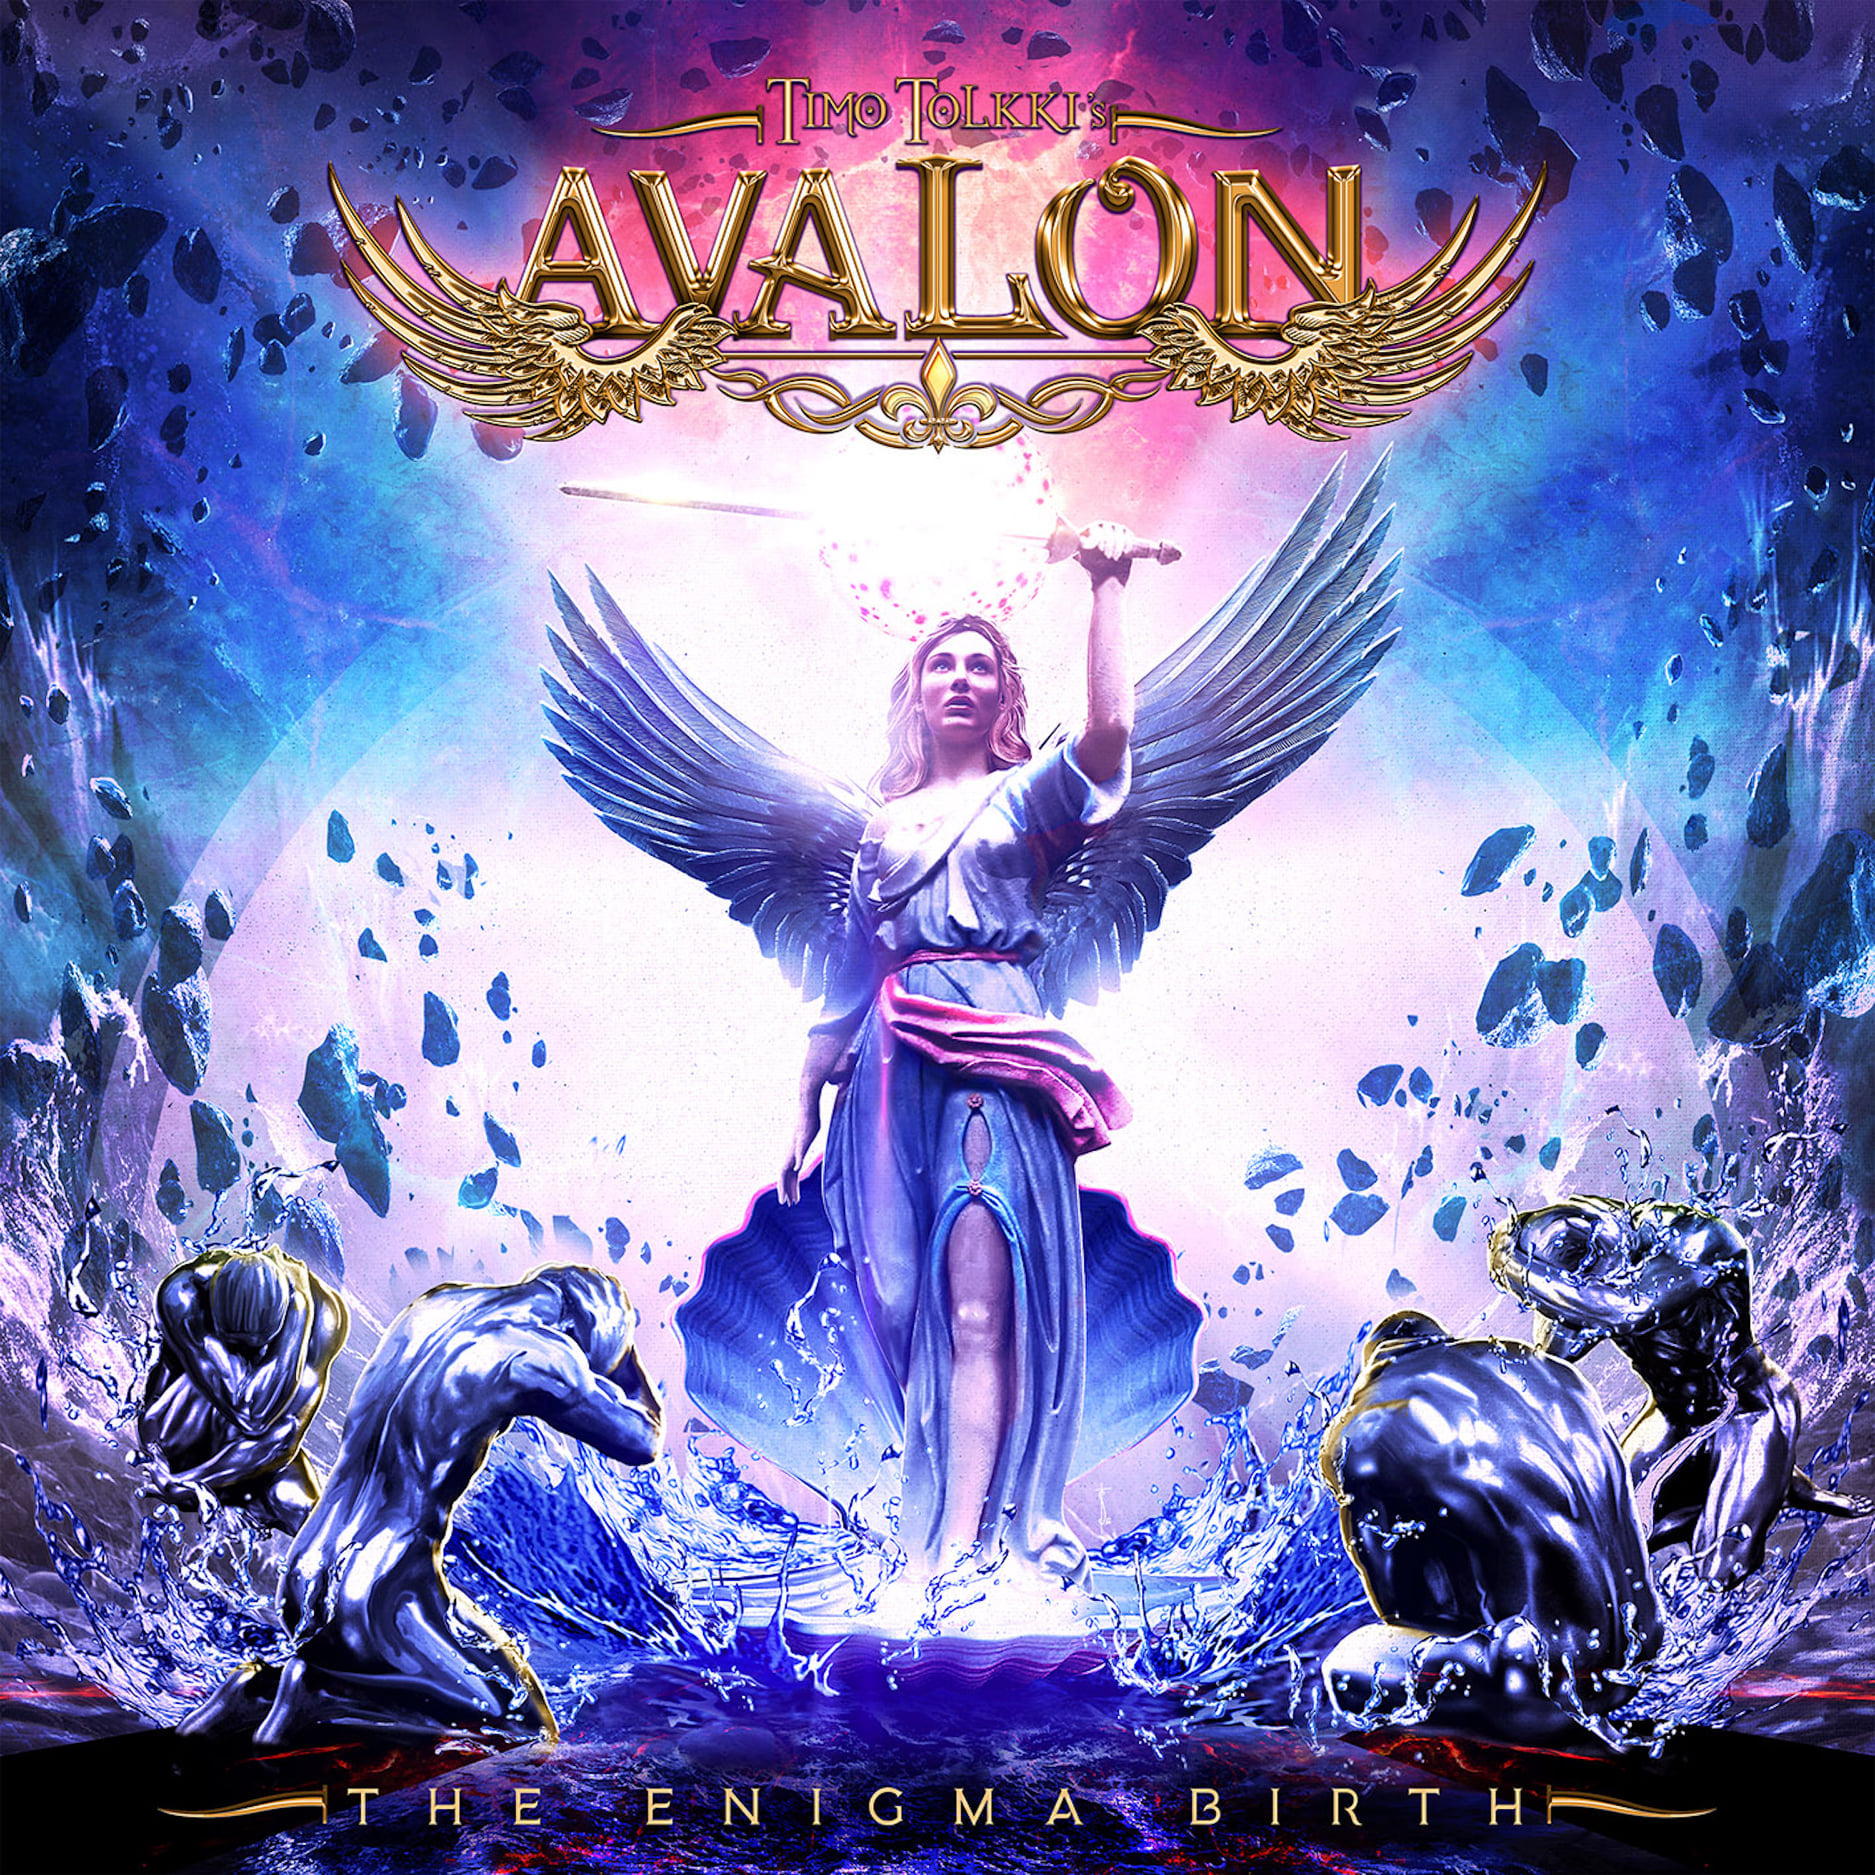 Timo Tolkki's Avalon announce new album and release first single.